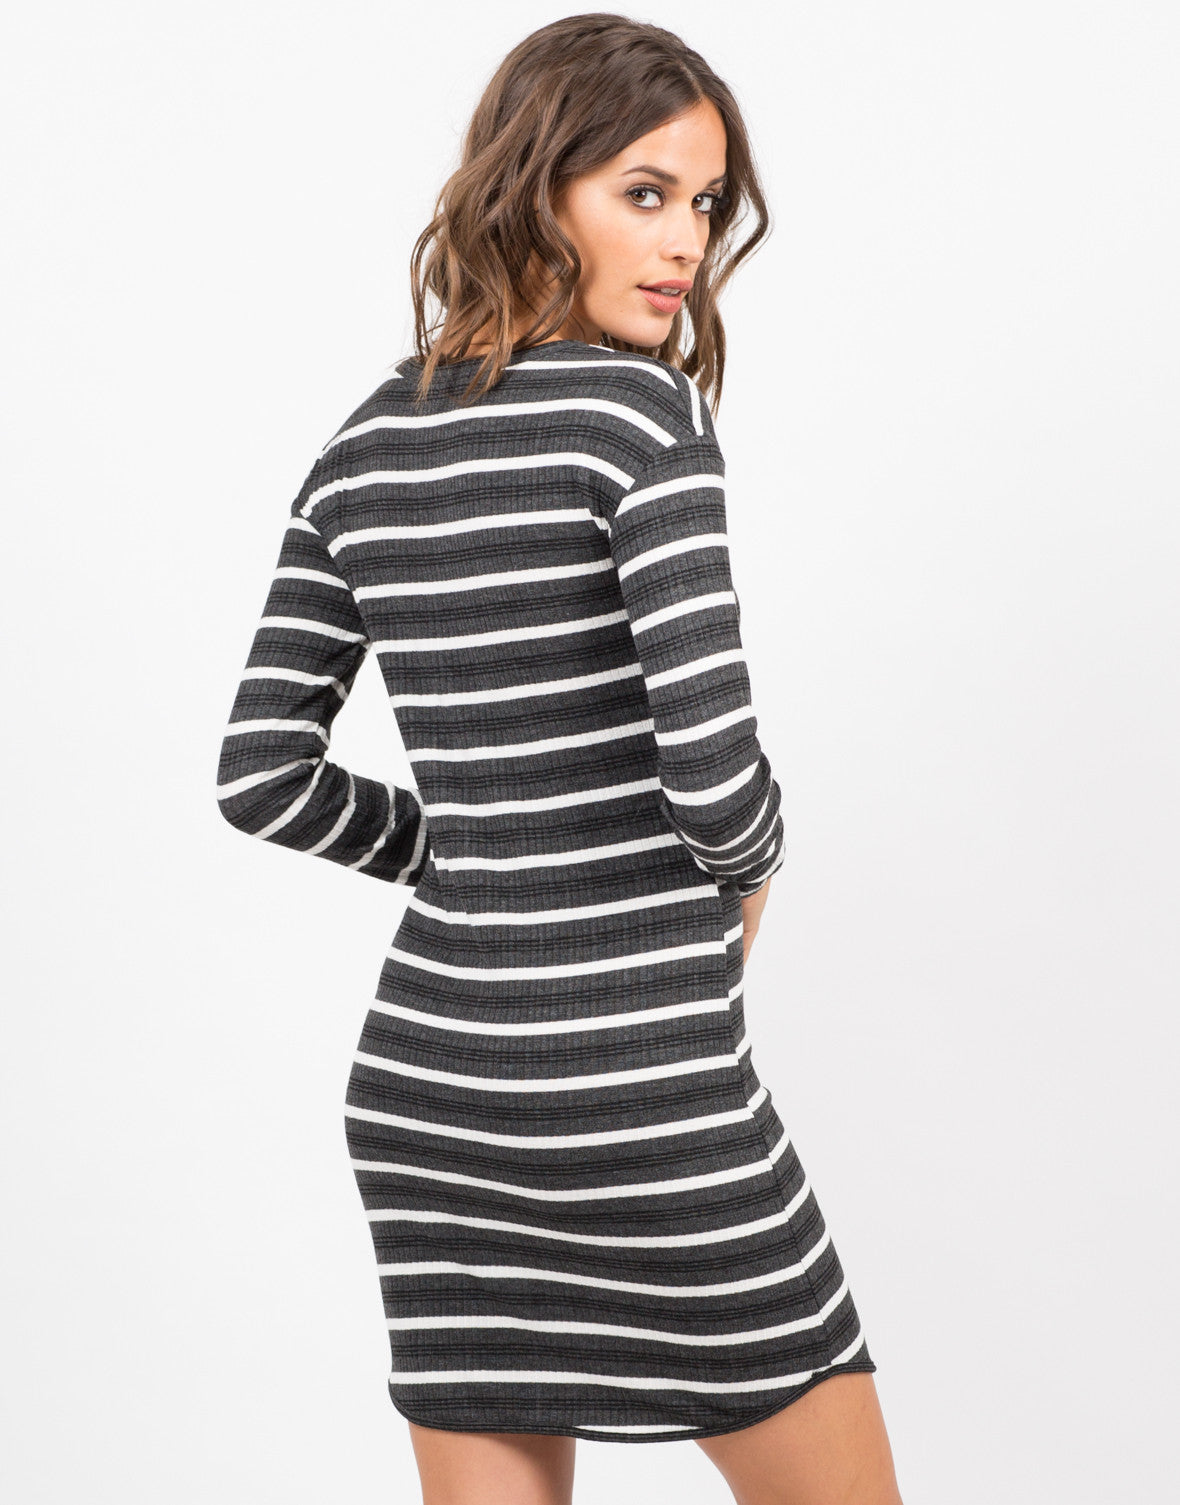 Back View of Long Sleeve Striped Rib Dress